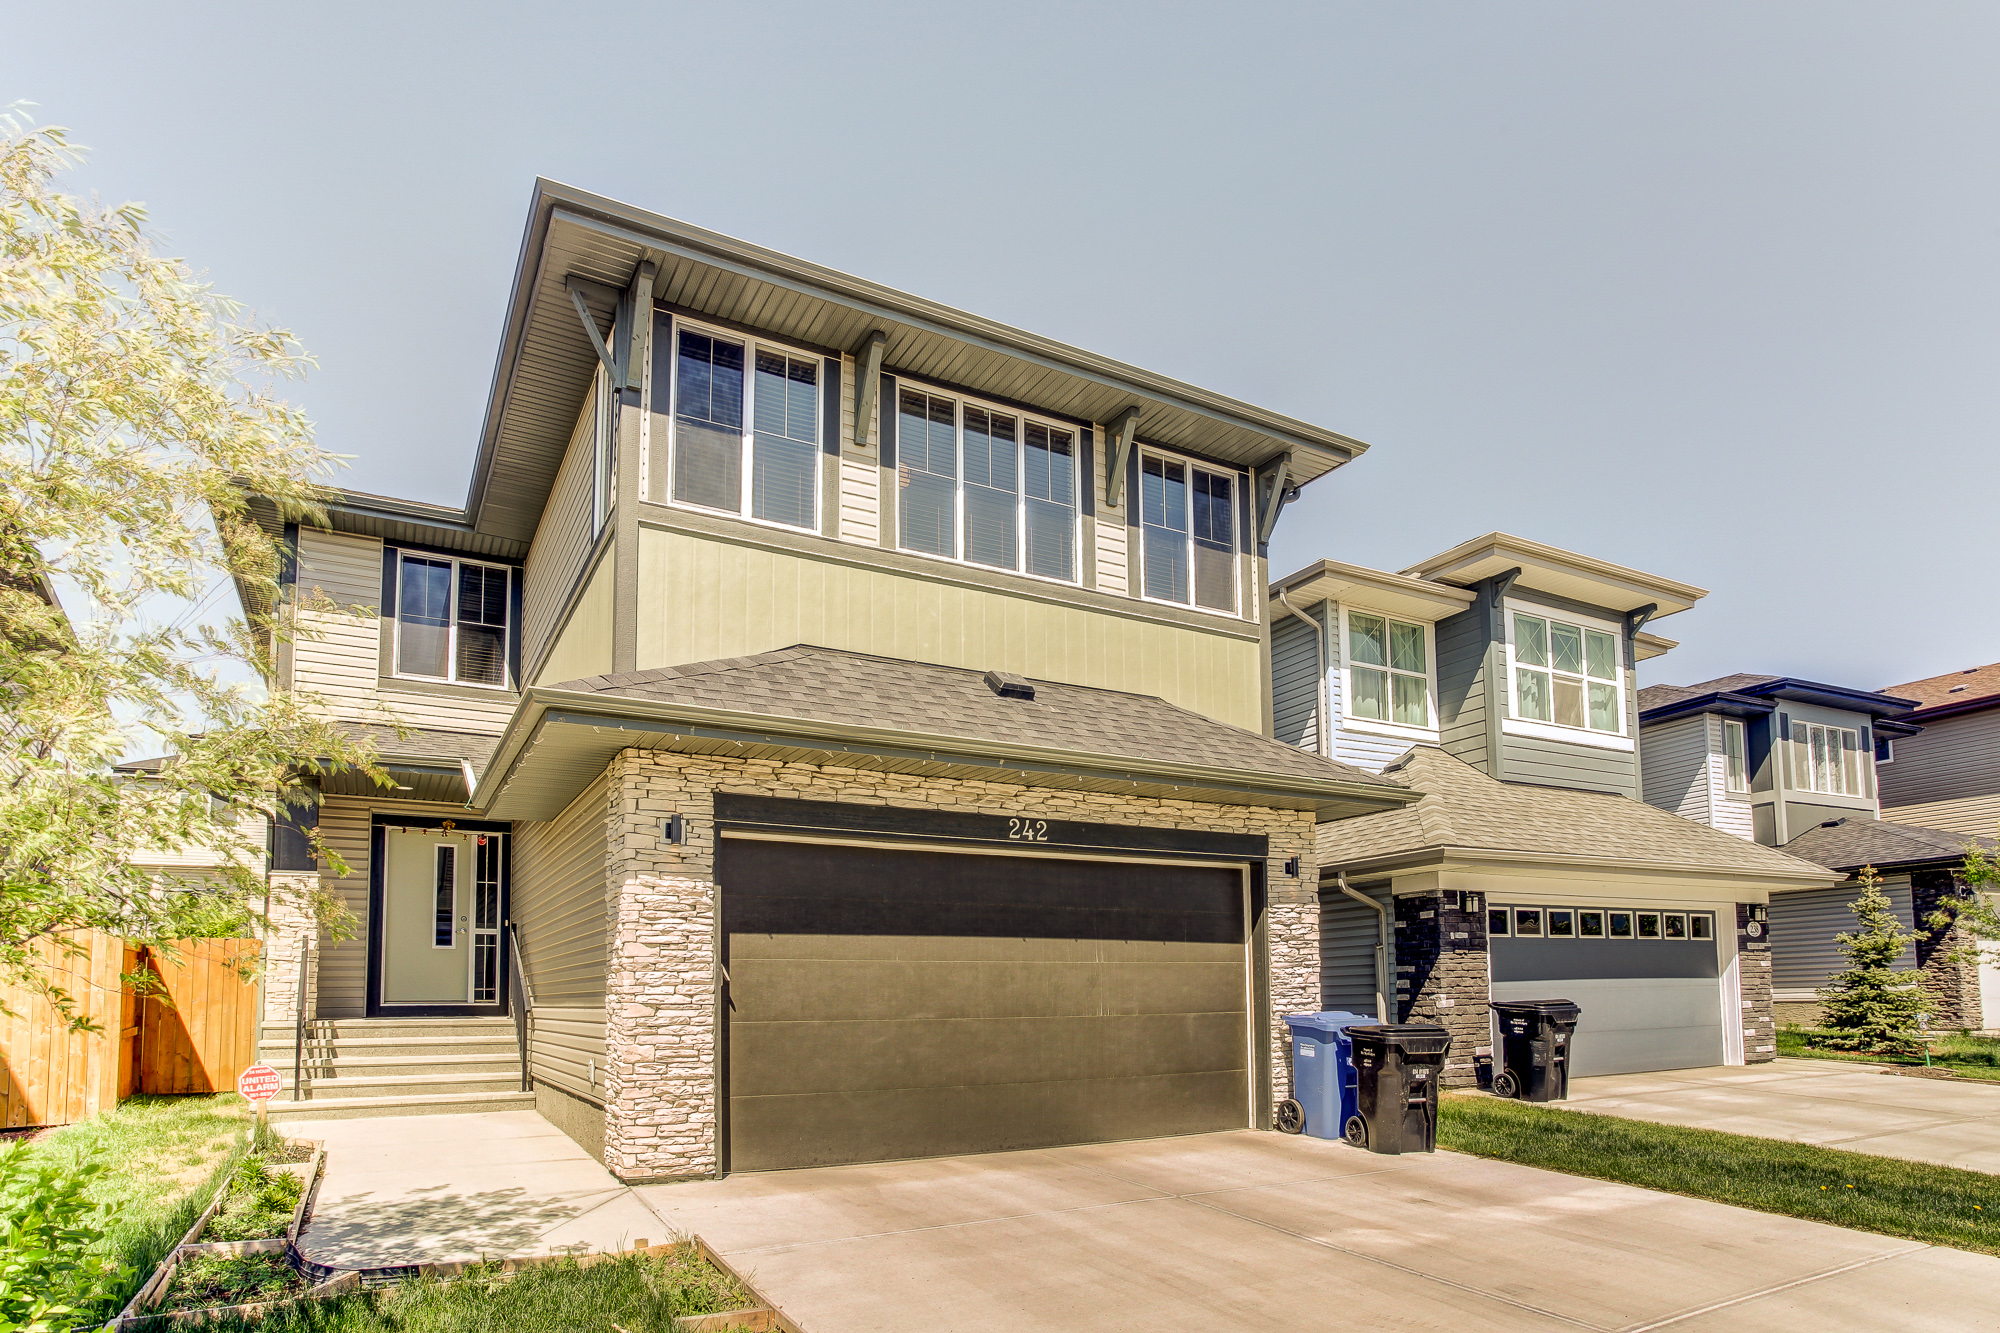 242 Walden SQ SE in Calgary, AB is Now Available